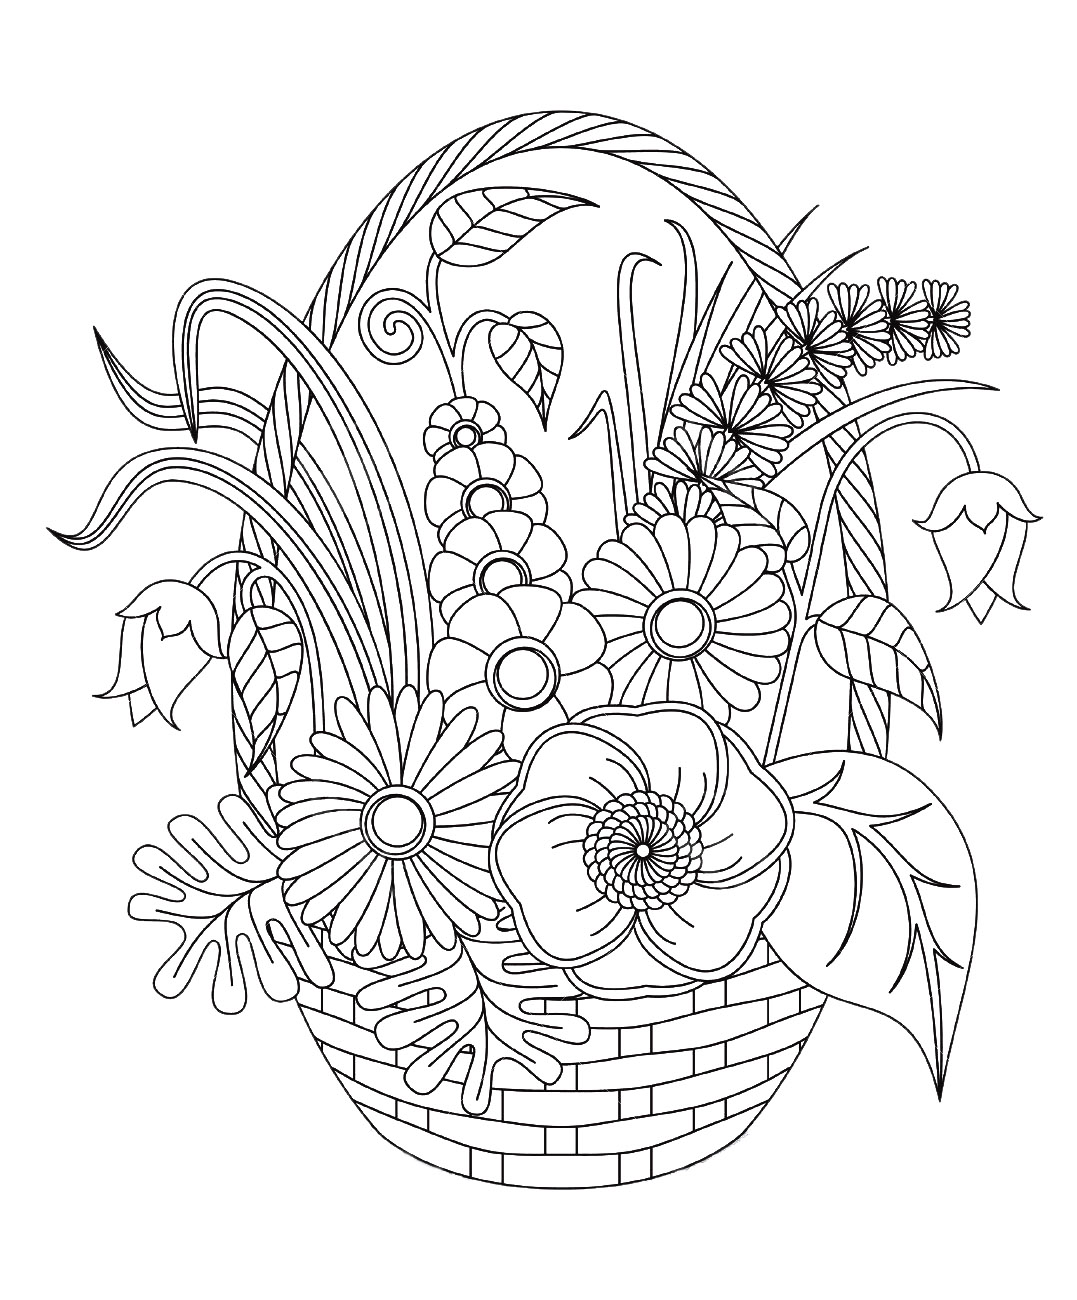 Simple Flowers coloring page for kids